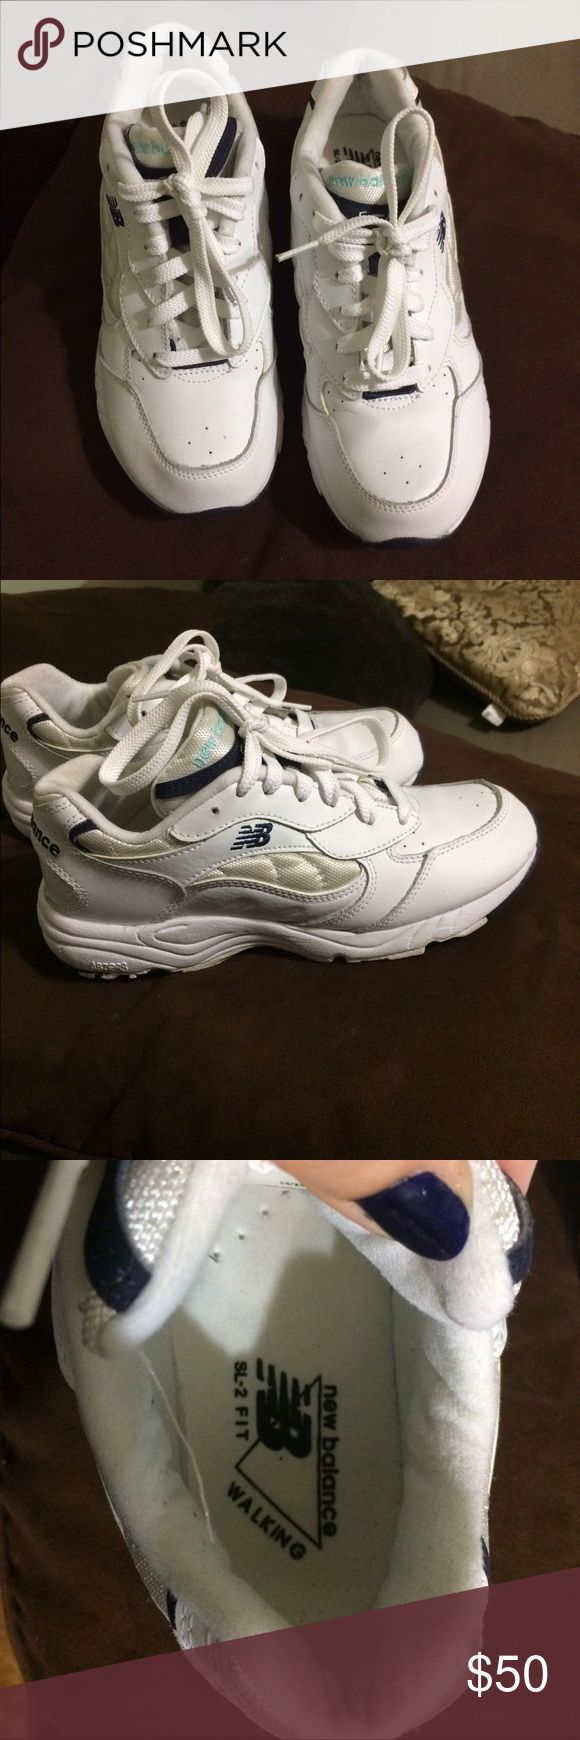 Reduced shipping!!New balance walking shoes/OBO Brand new- worn once and walked 2 miles- I really needed a 7.5 and these are a 7. Super comfortable and great walking shoes- all white shoes with mint color on tongue New Balance Shoes Athletic Shoes